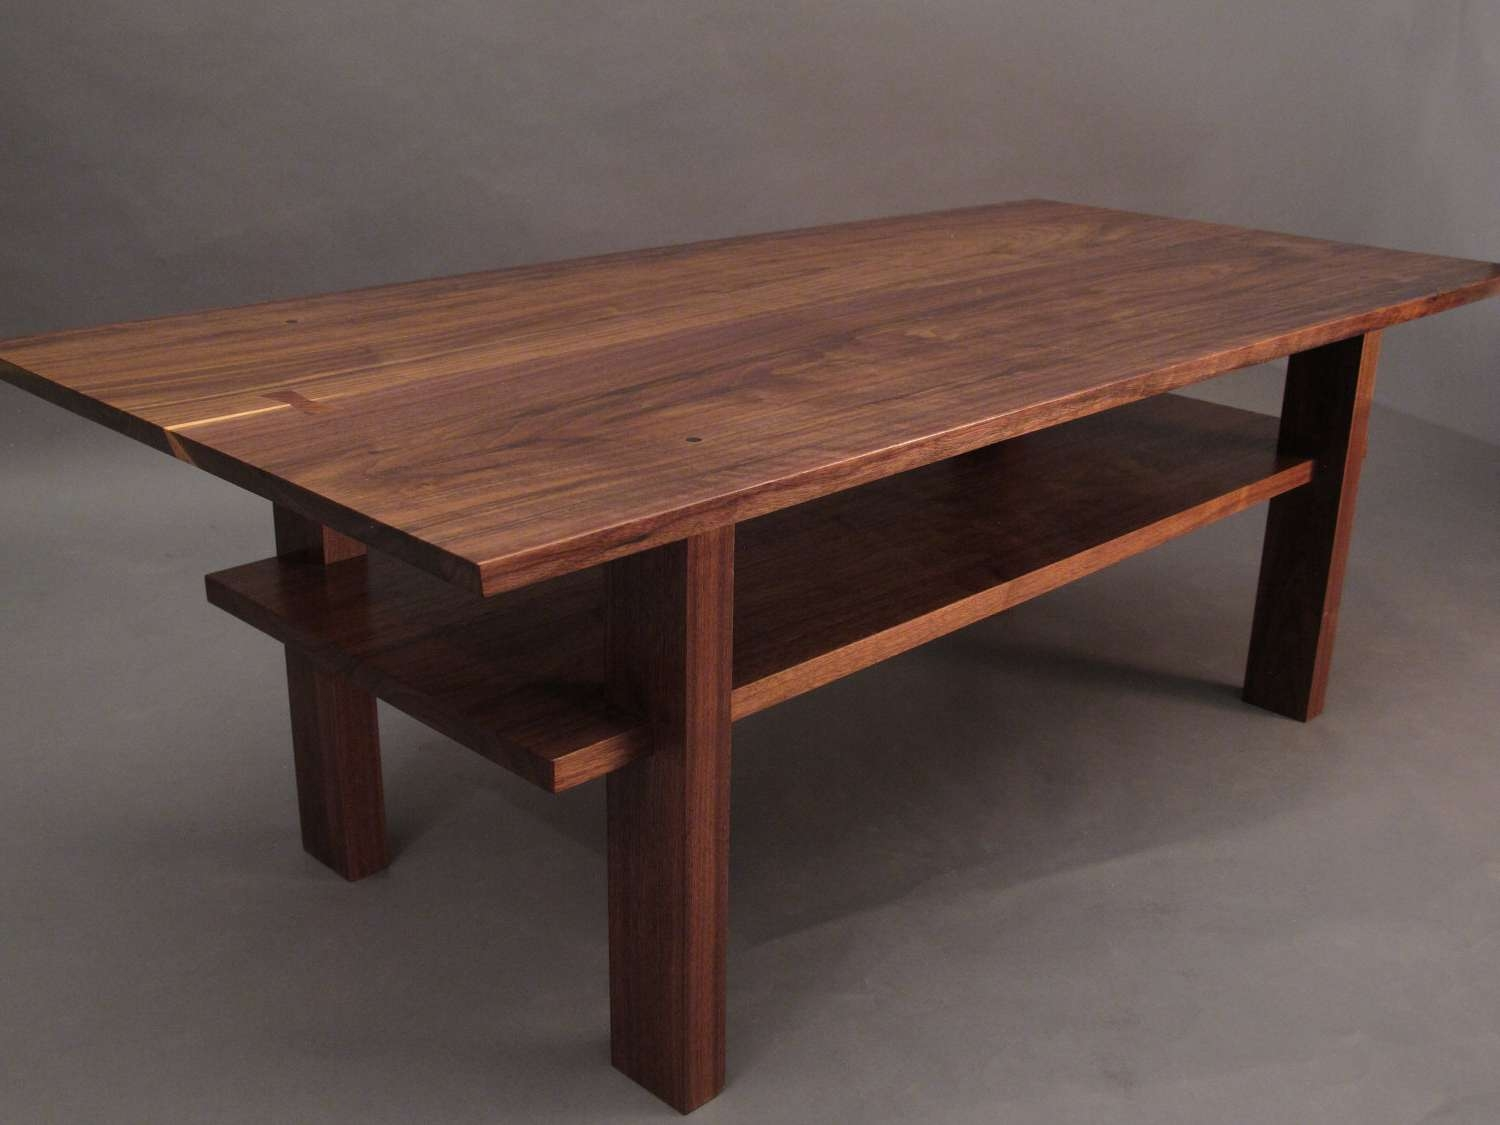 Well Known Small Wood Coffee Tables Throughout Coffee Tables : Splendid Small Coffee Table High End Coffee Tables (View 20 of 20)